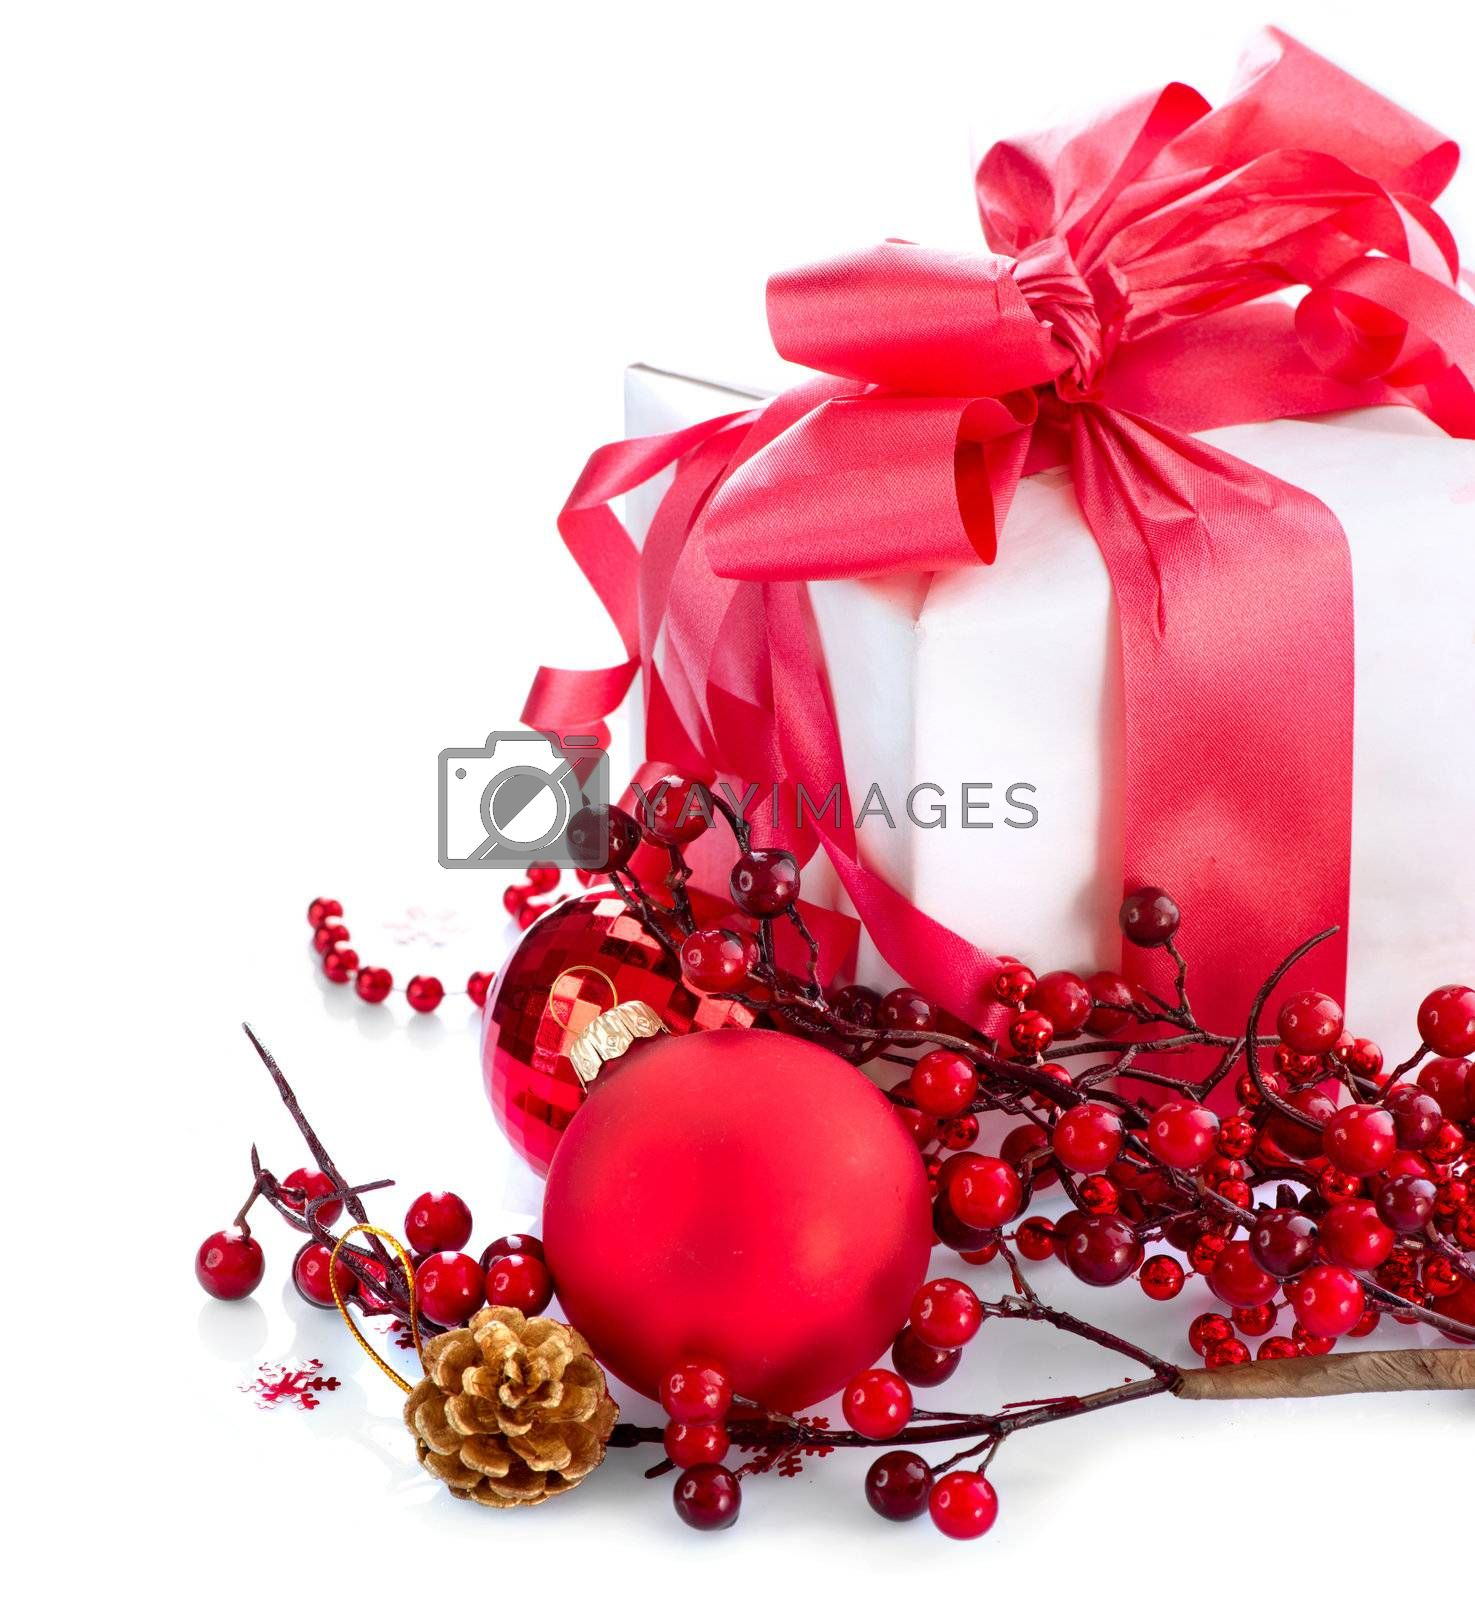 Christmas and New Year Gift Box and Decorations over White